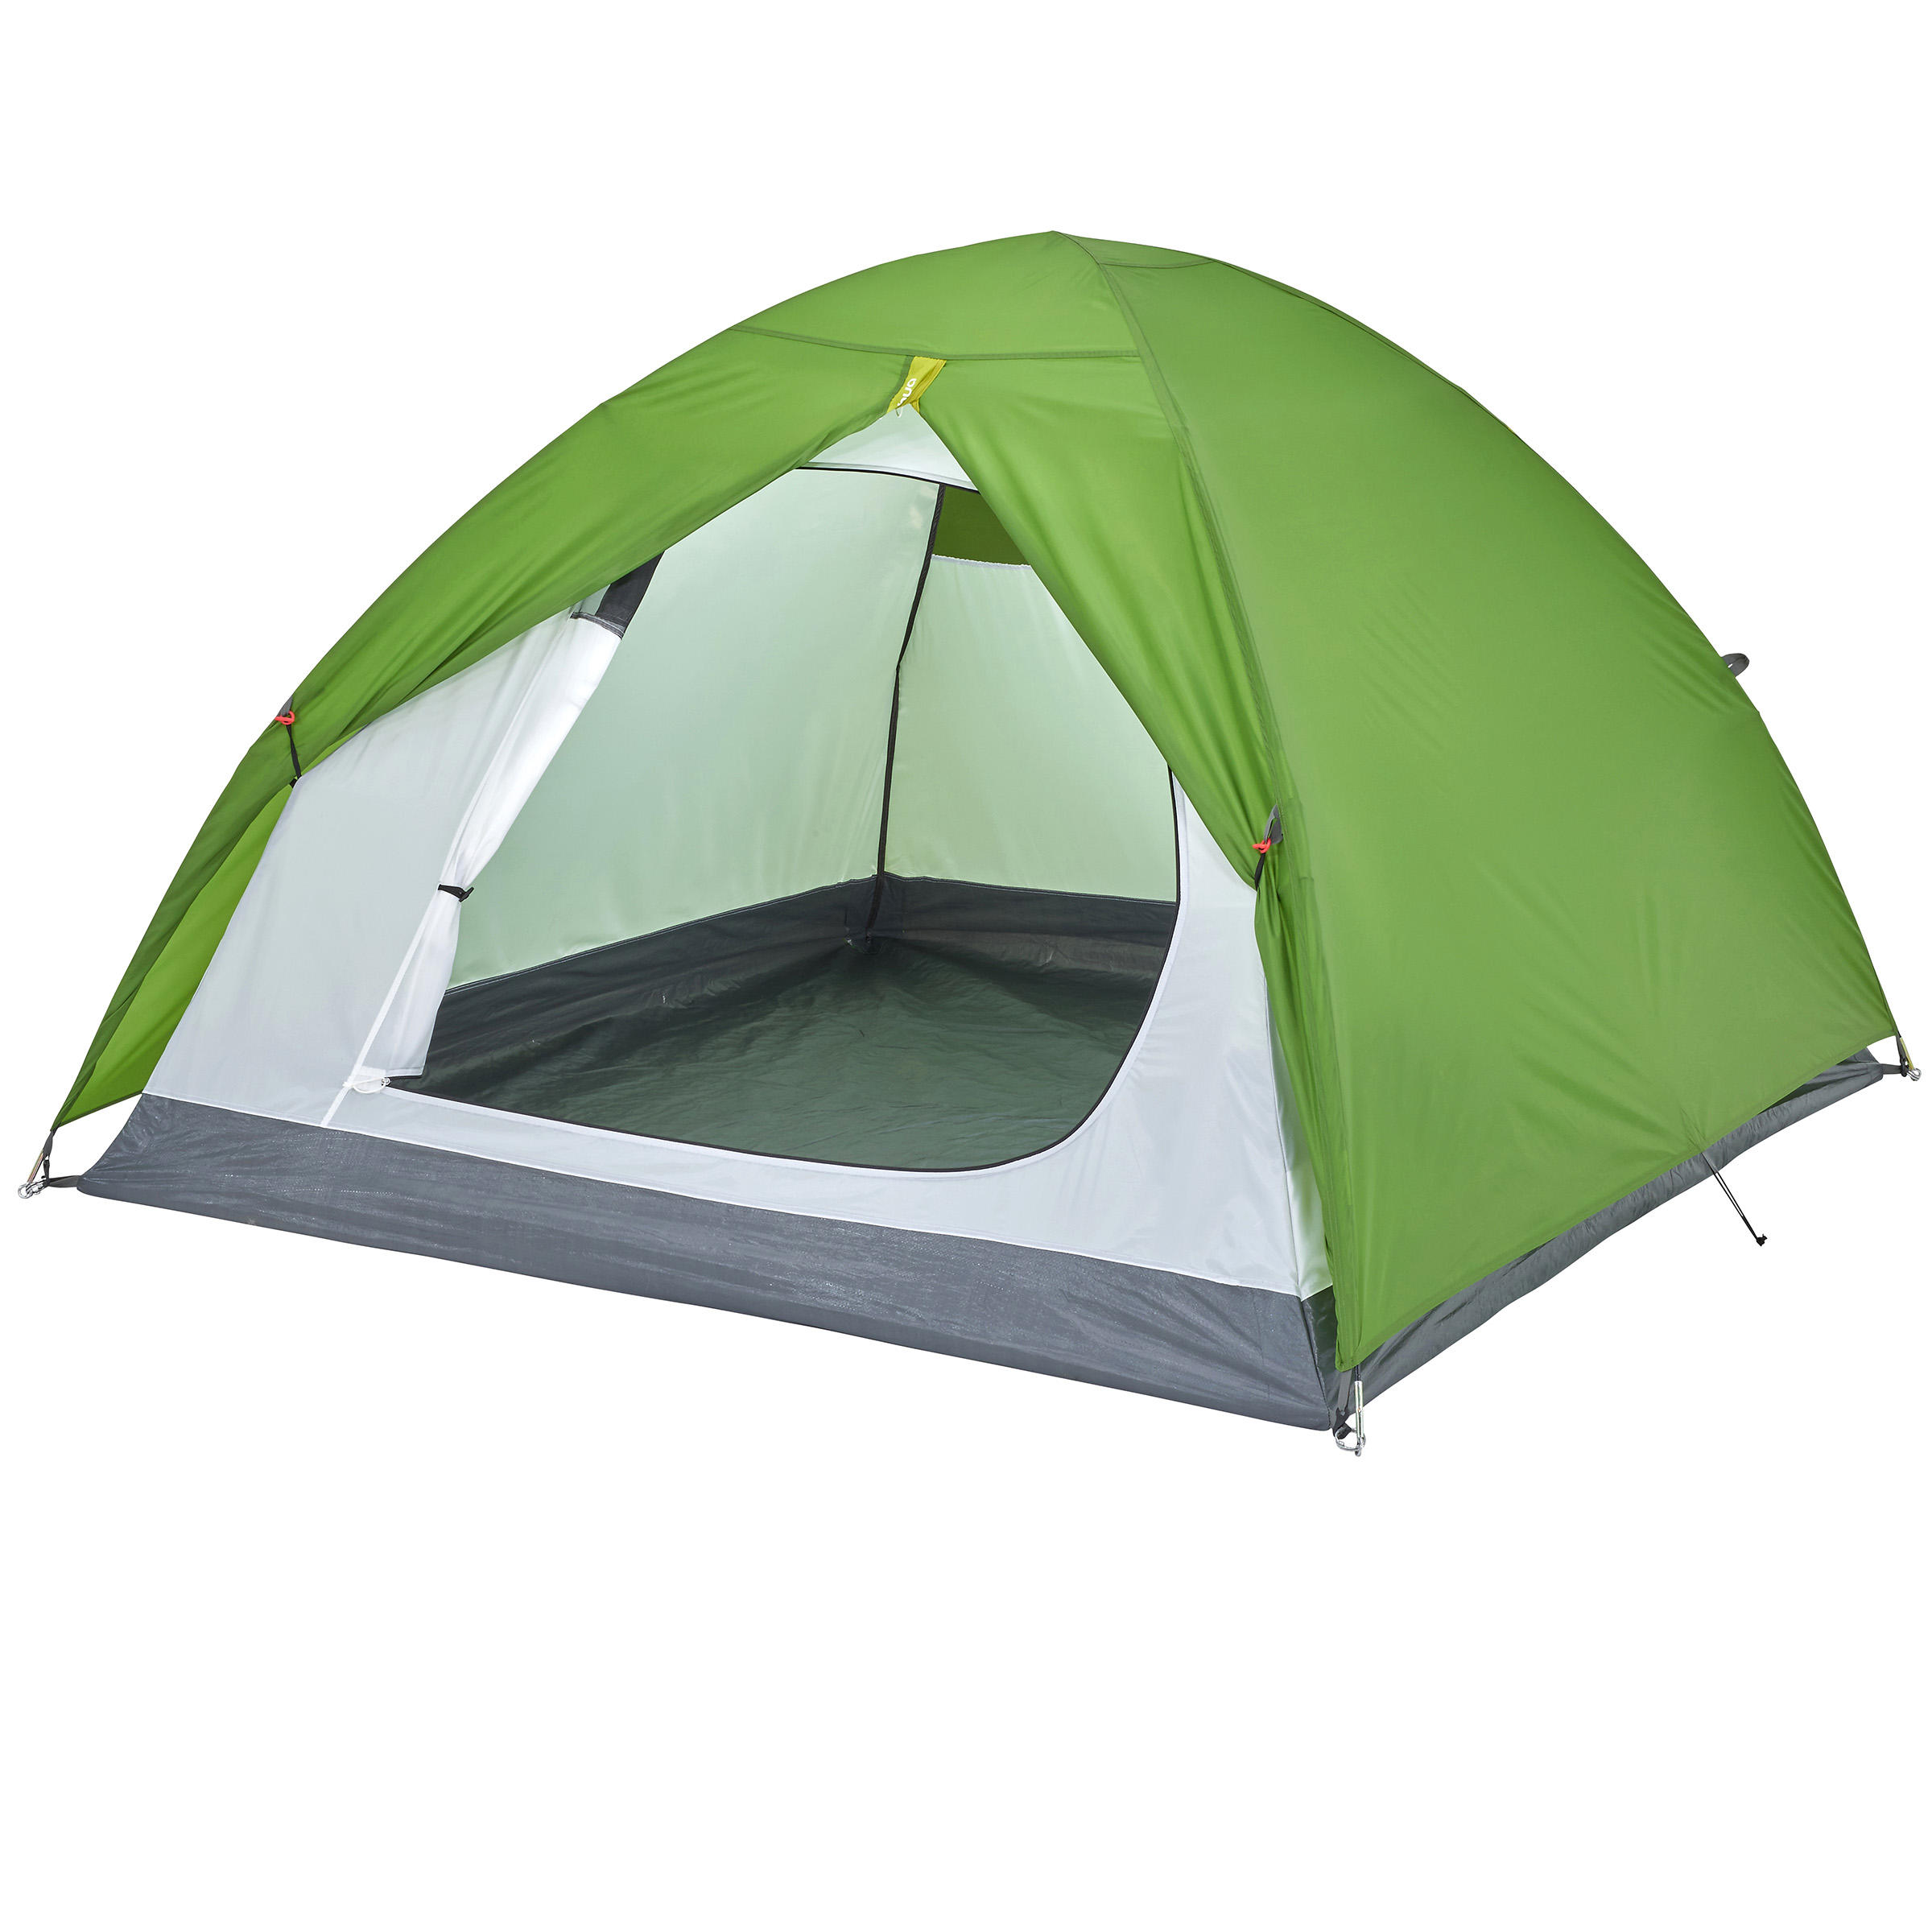 ARPENAZ c&ing tent _PIPE_ 3 person green  sc 1 st  Decathlon & Buy Camping Tents Online | Quechua 3 person Tents for Camping